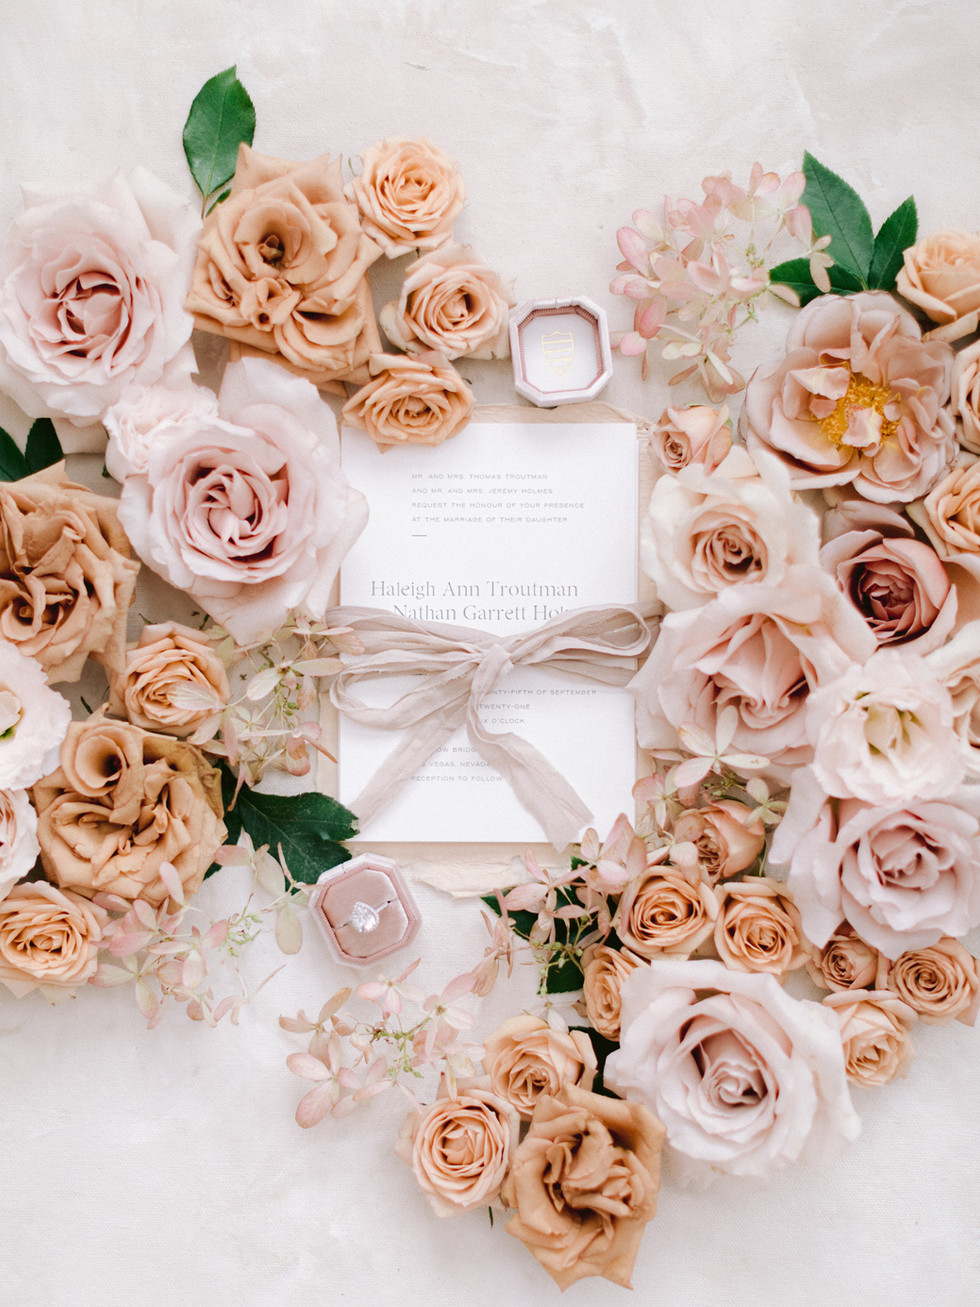 Toffee and blush styling blooms for wedding invitations. Photo: Susie and Will